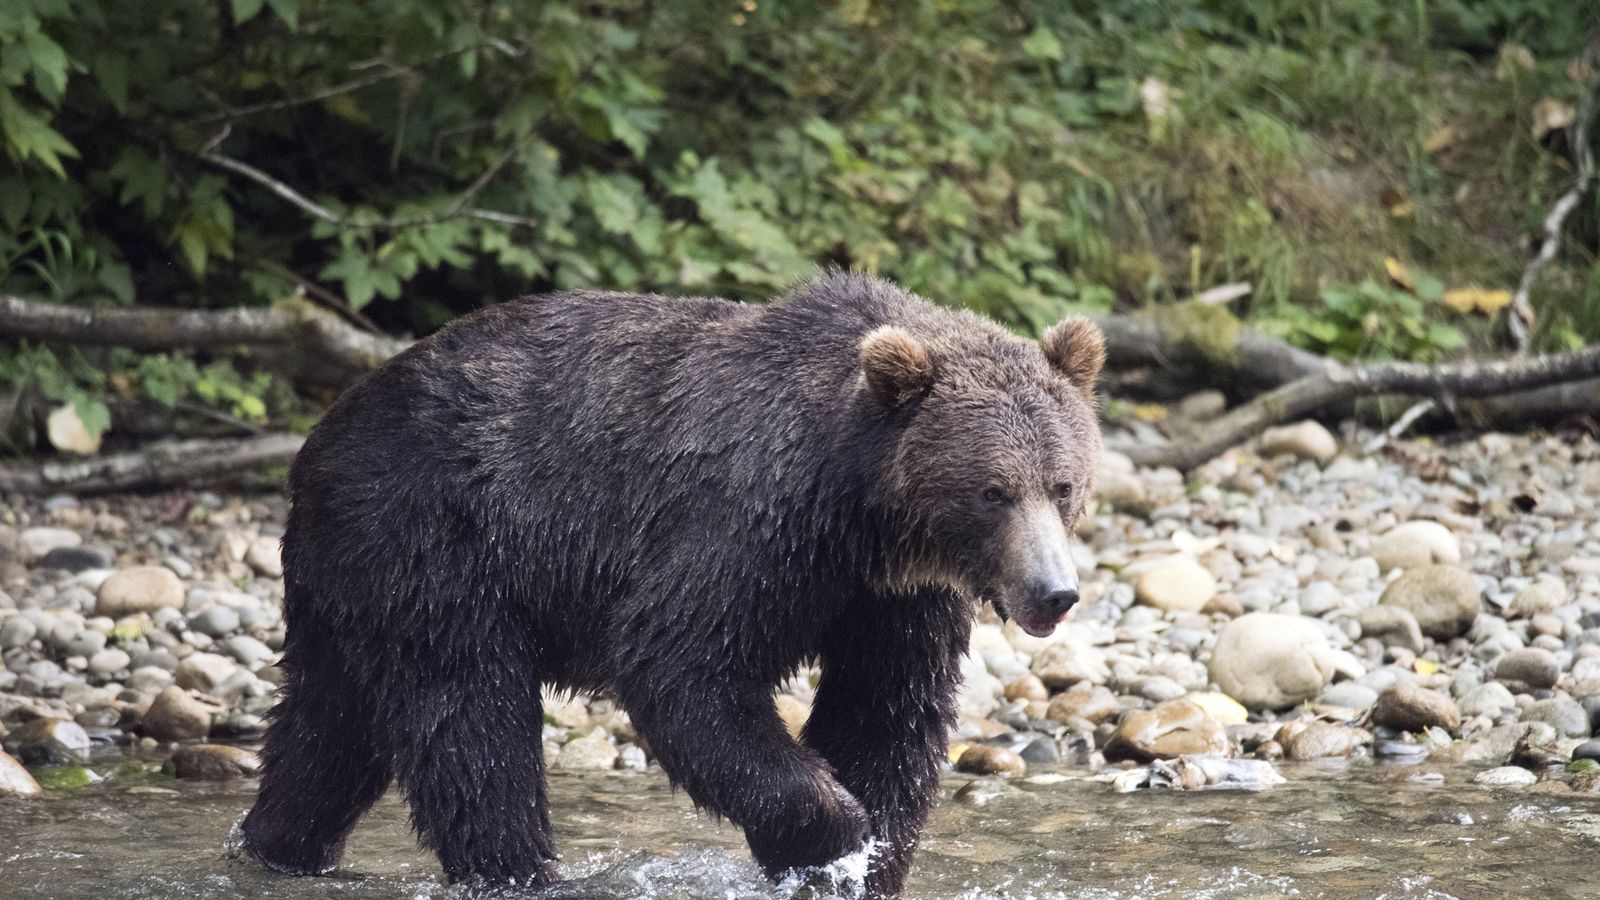 Mother and baby killed in grizzly bear attack